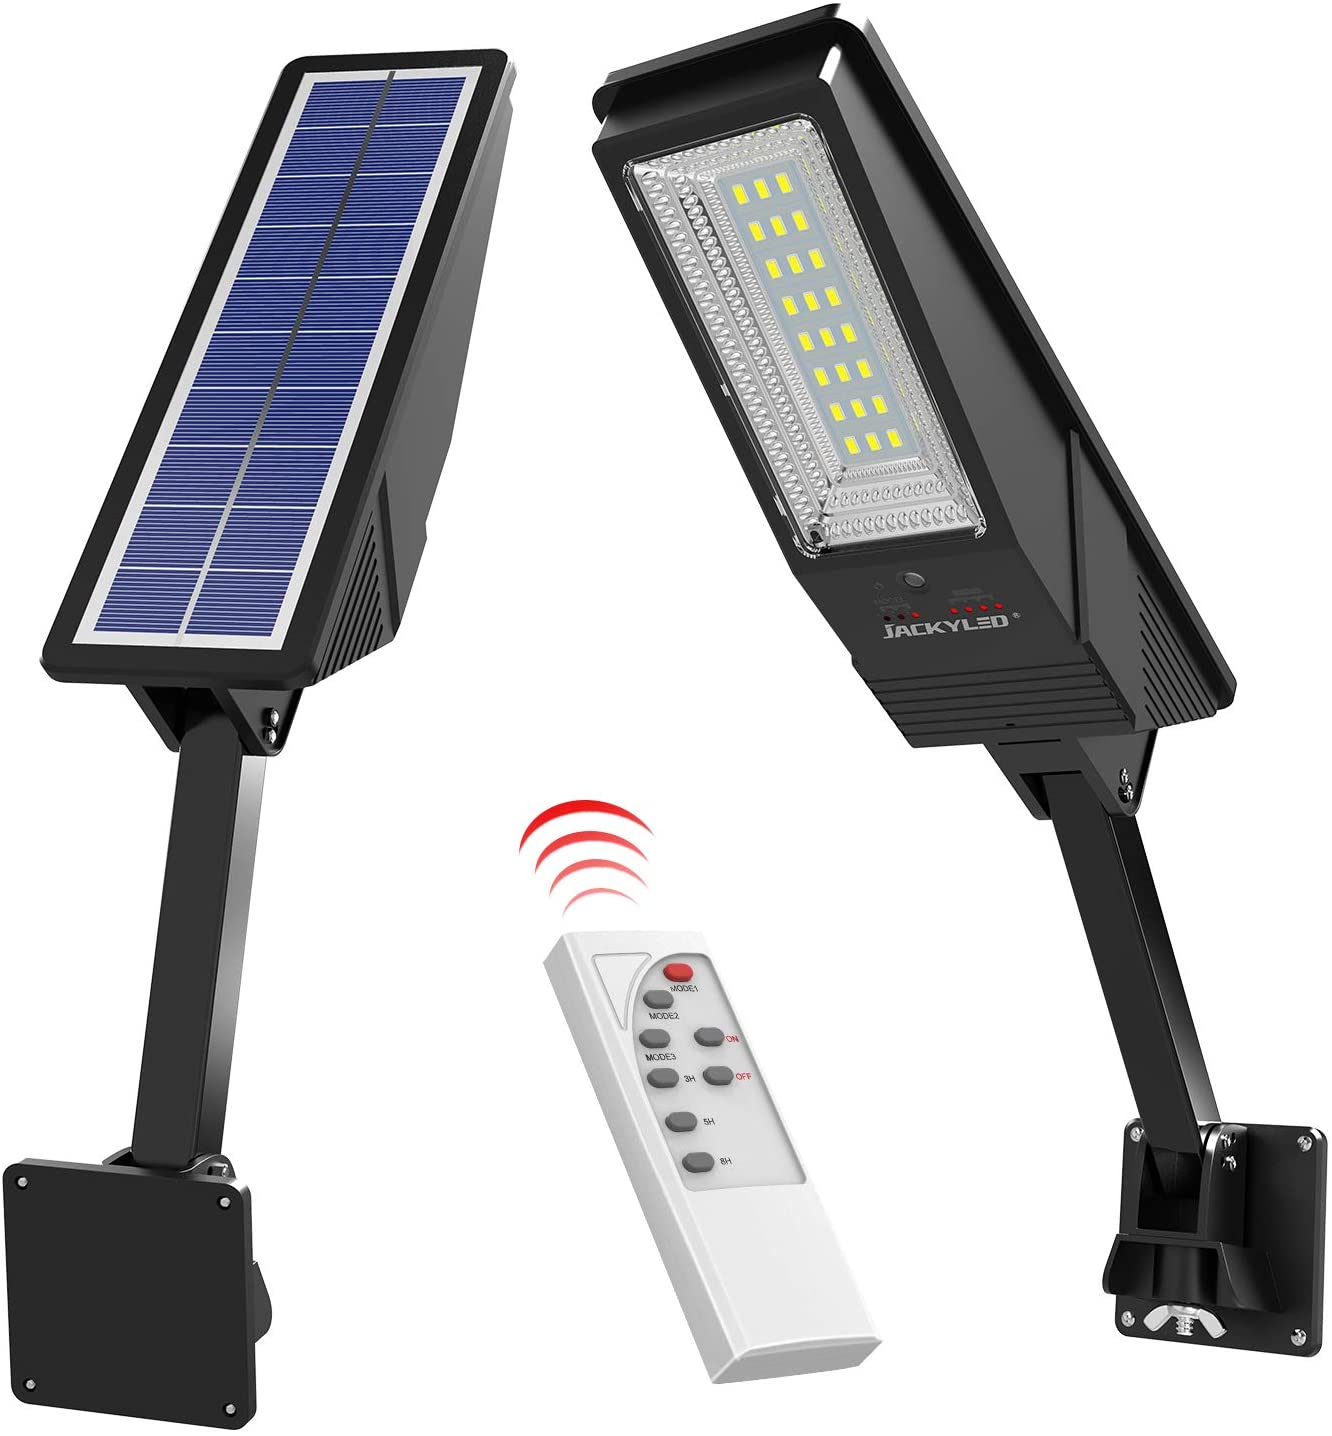 Solar outdoor light with remote control